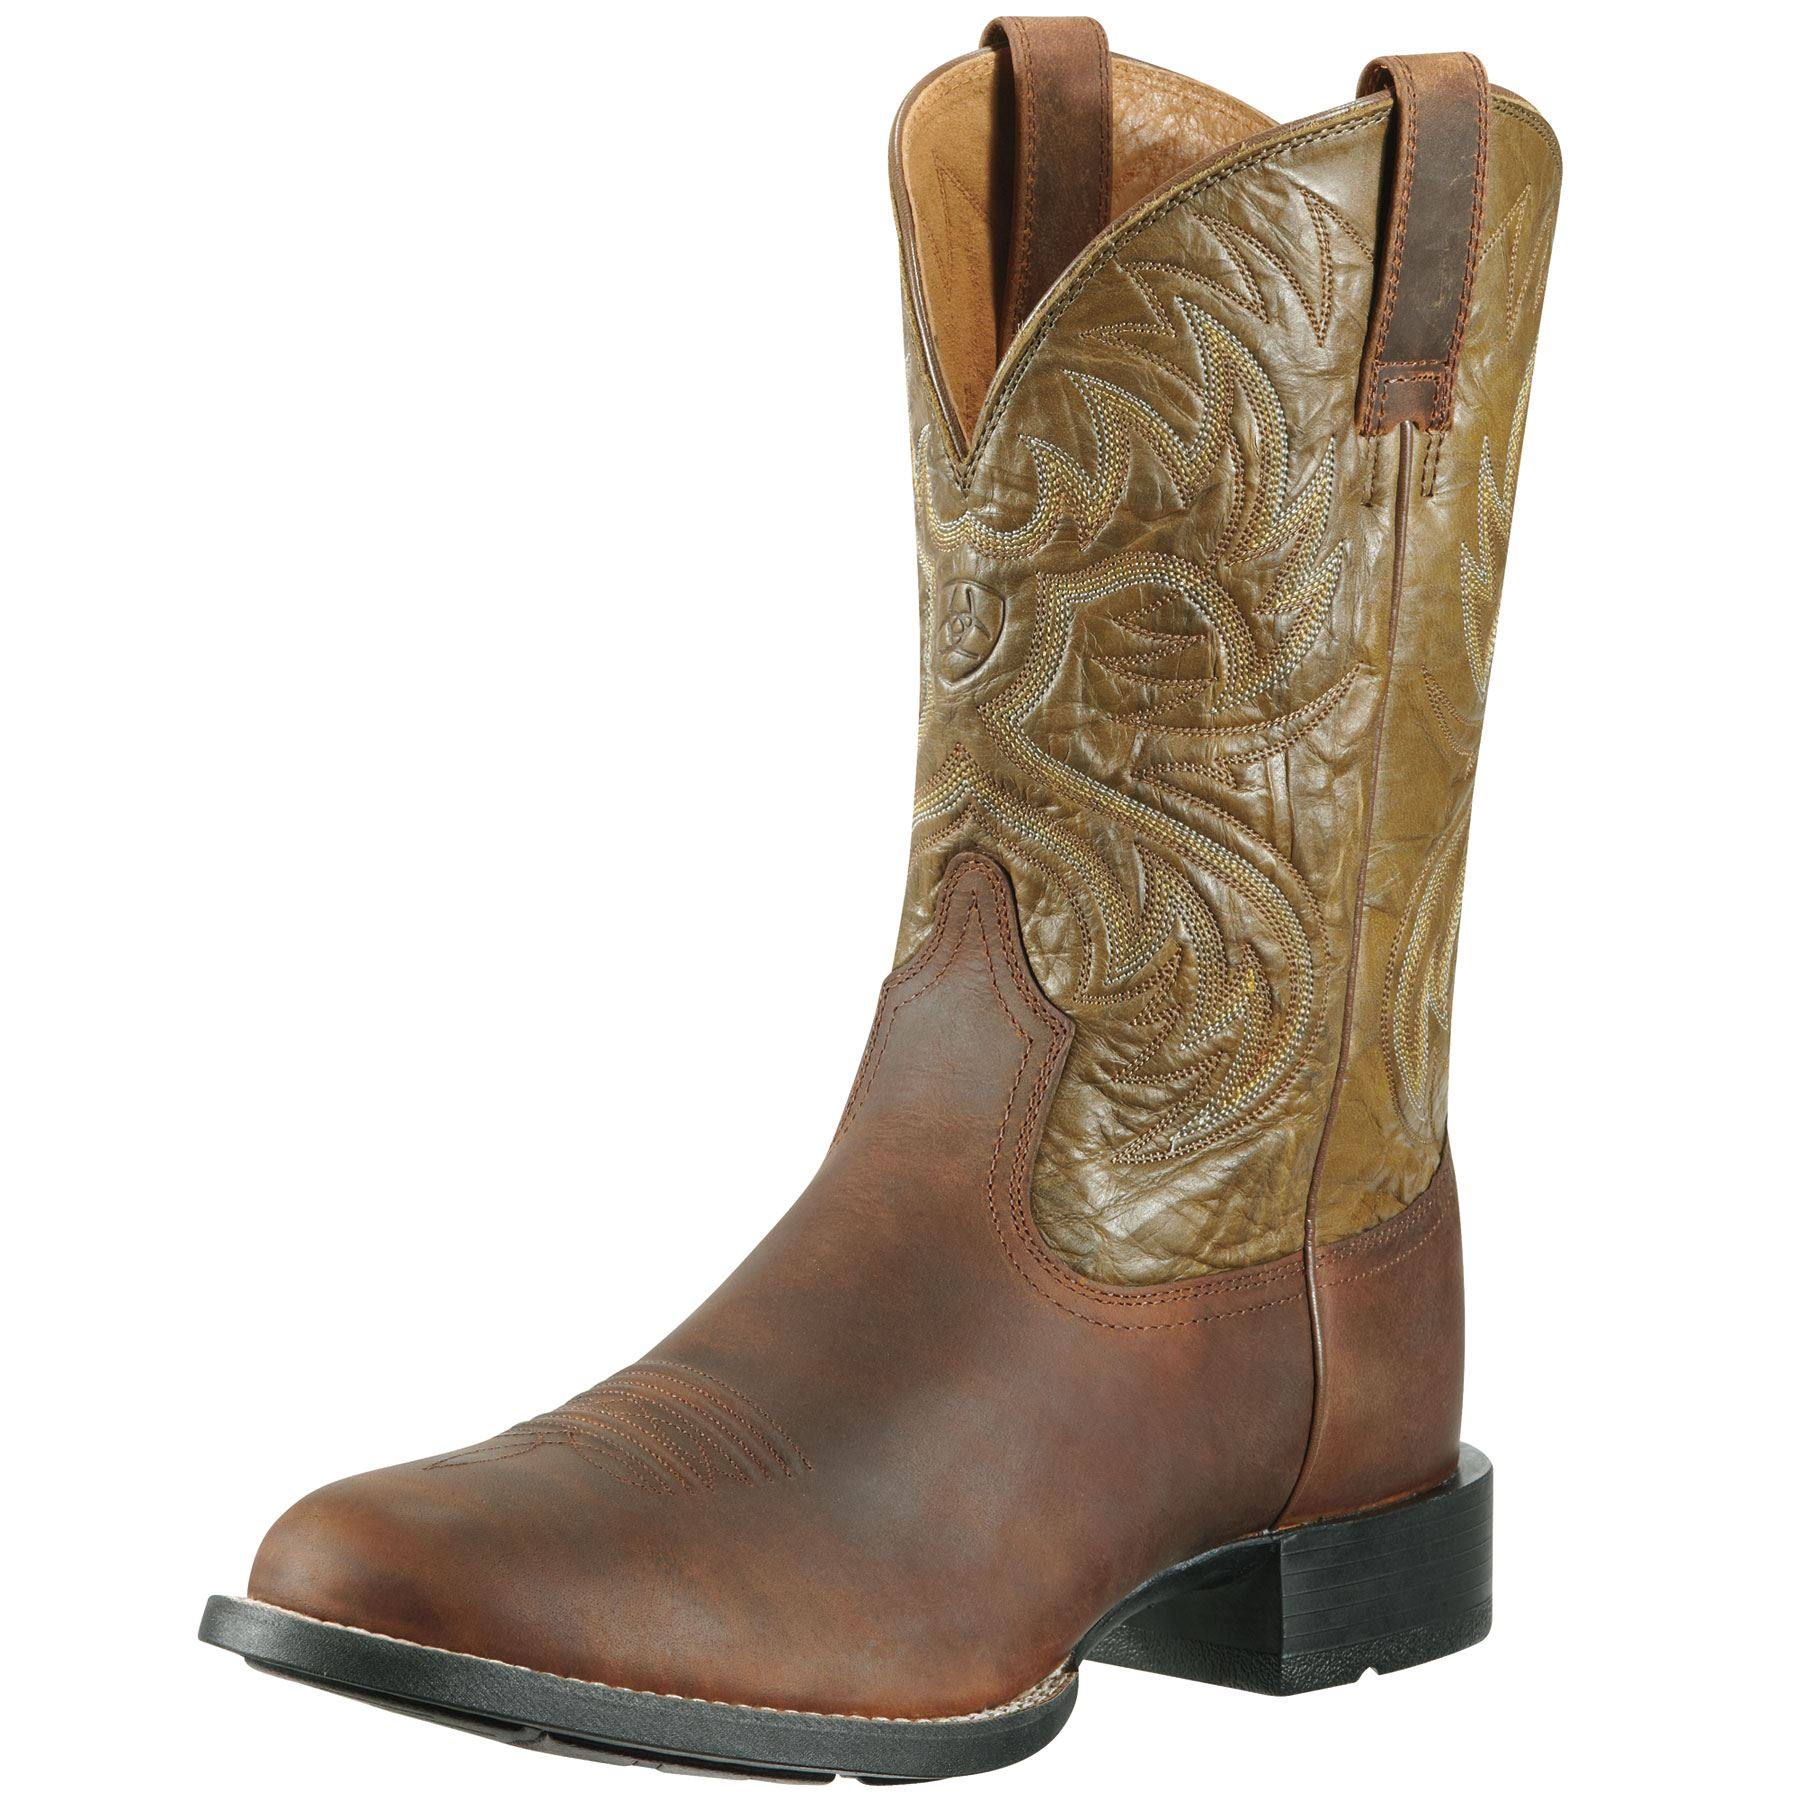 Ariat Mens Heritage Horseman Distress/Army Green Boot